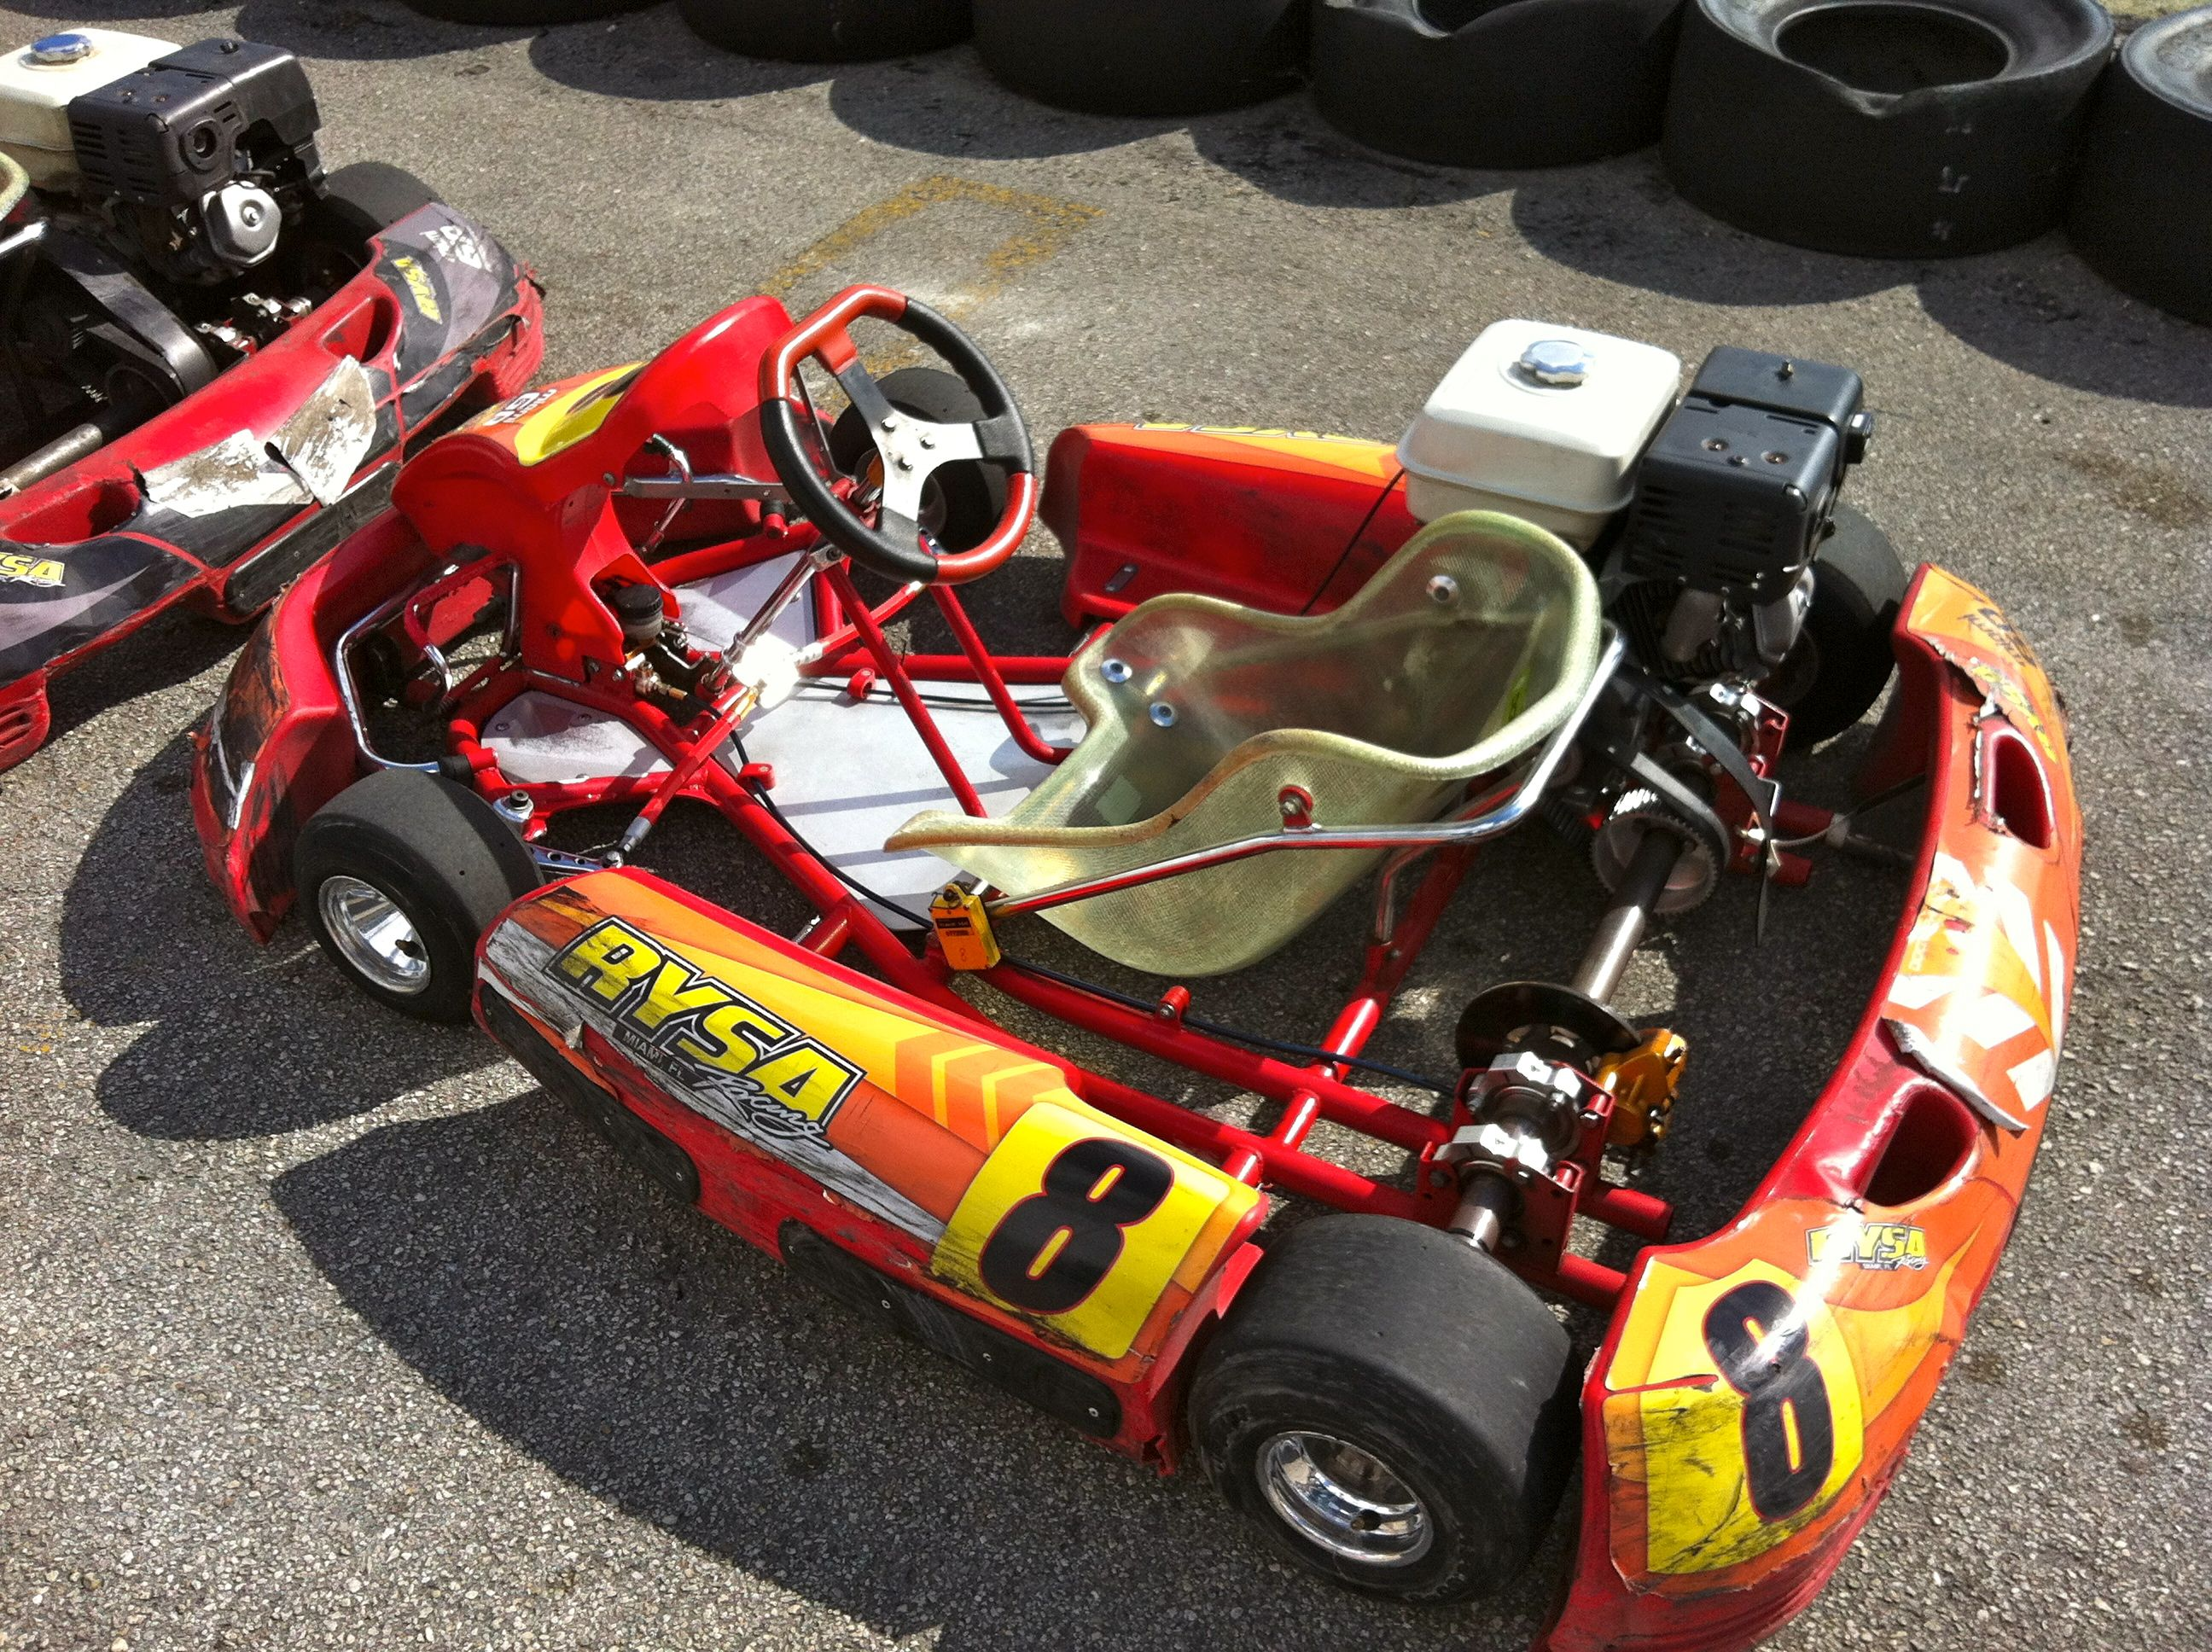 go cart racing in miami places i have been pinterest go kartgo cart racing in miami go kart tracks, go kart racing, karting, dirt